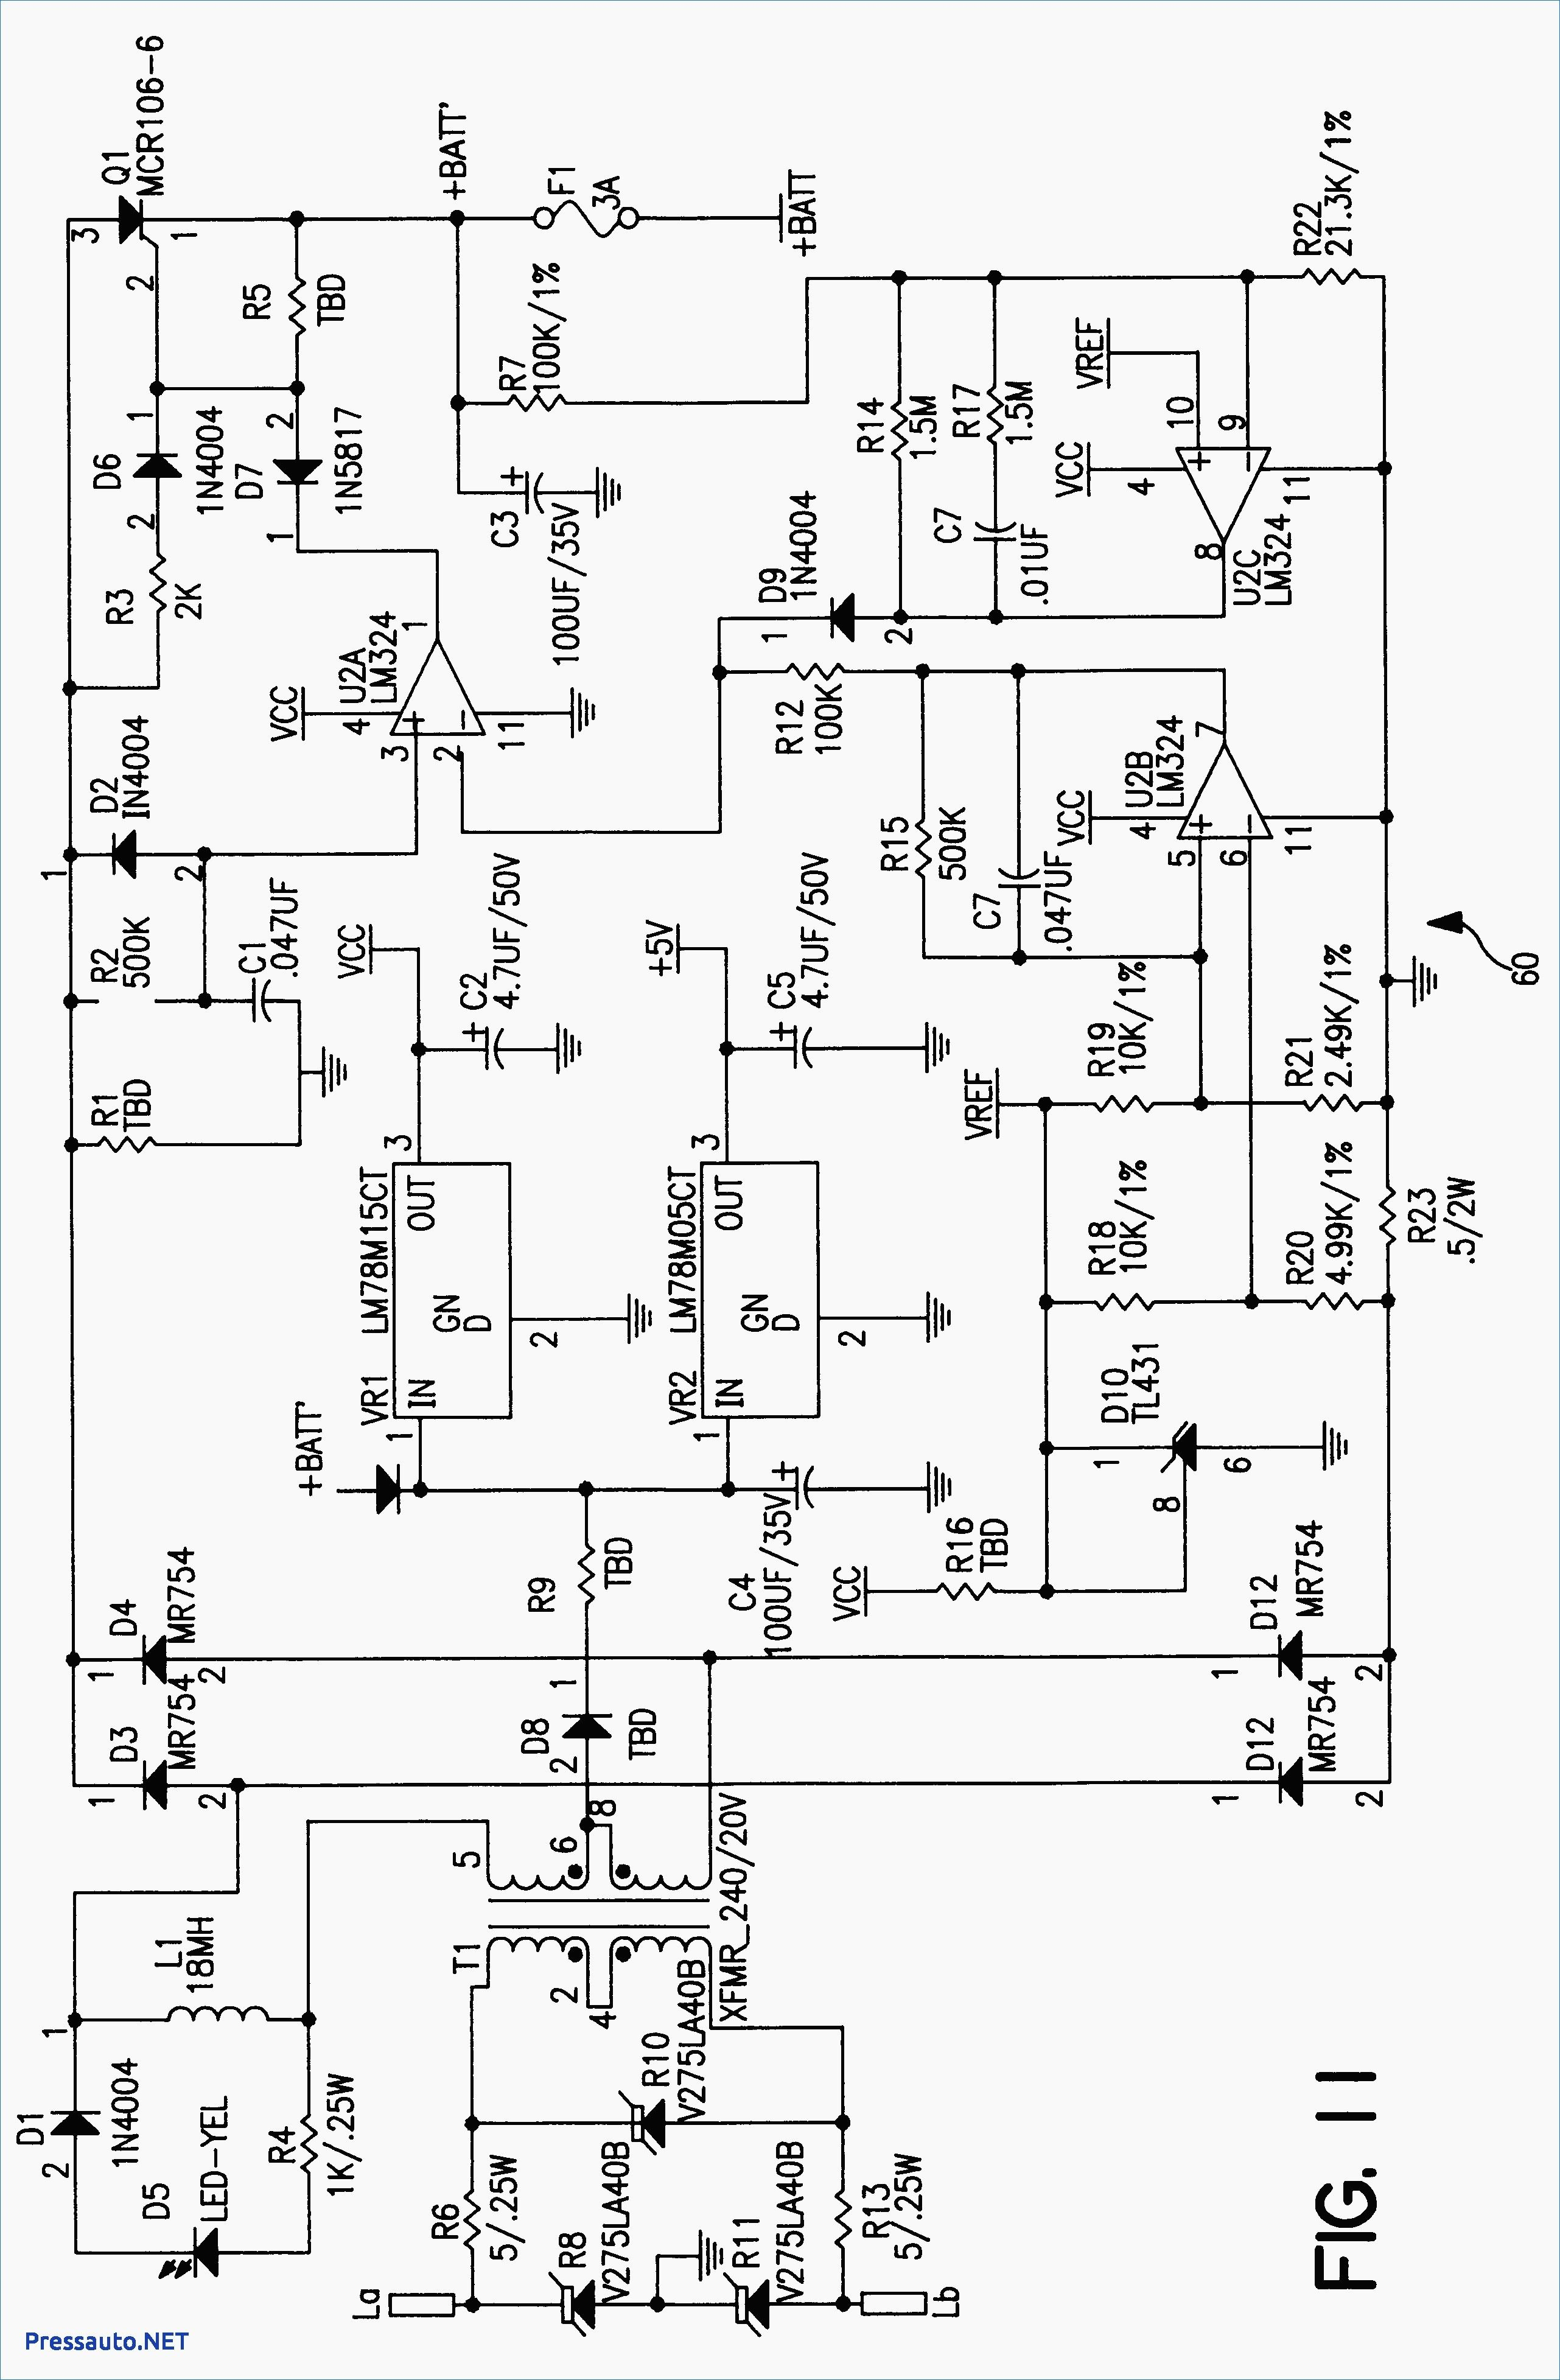 hight resolution of home generator transfer switch wiring diagram wiring diagram ideas generator fuel system diagram generator solenoid diagram